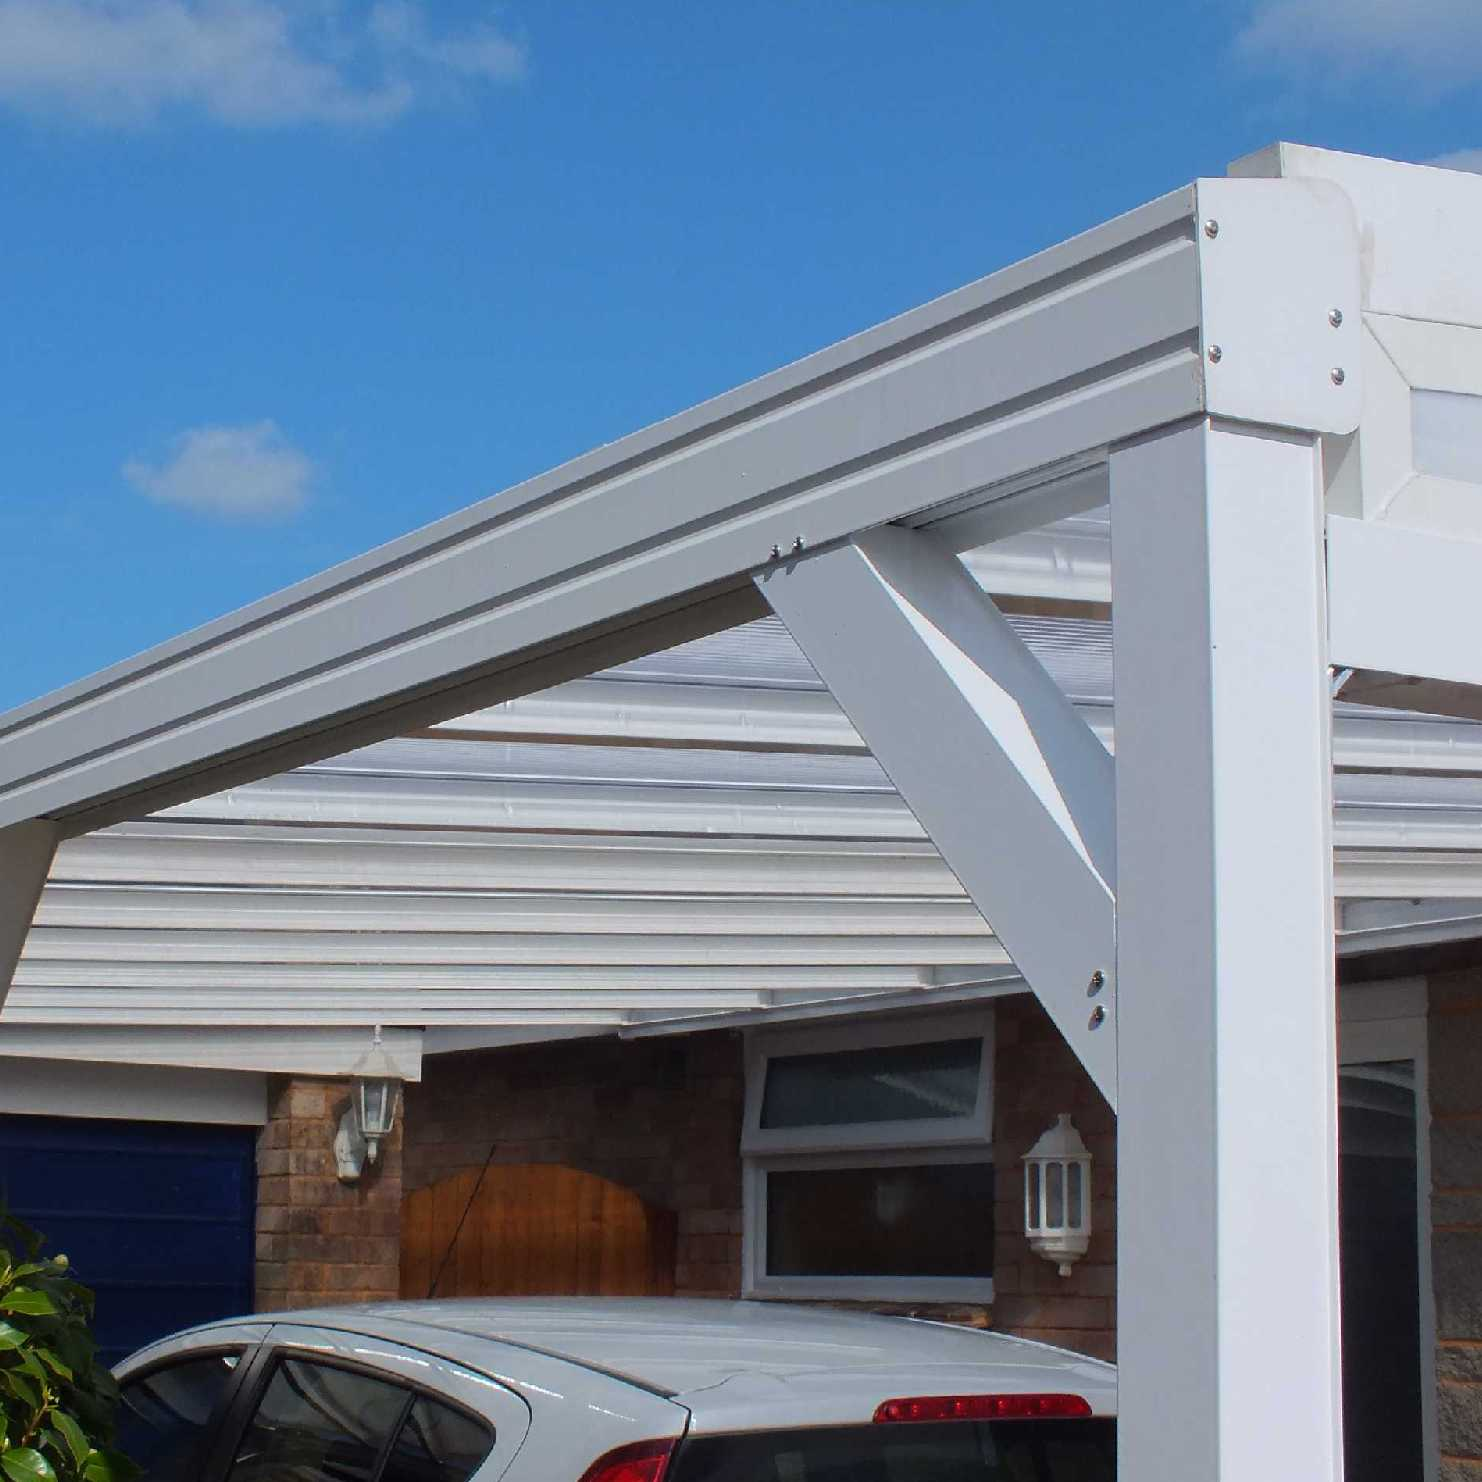 Buy Omega Smart Lean-To Canopy with 16mm Polycarbonate Glazing - 2.1m (W) x 3.5m (P), (2) Supporting Posts online today